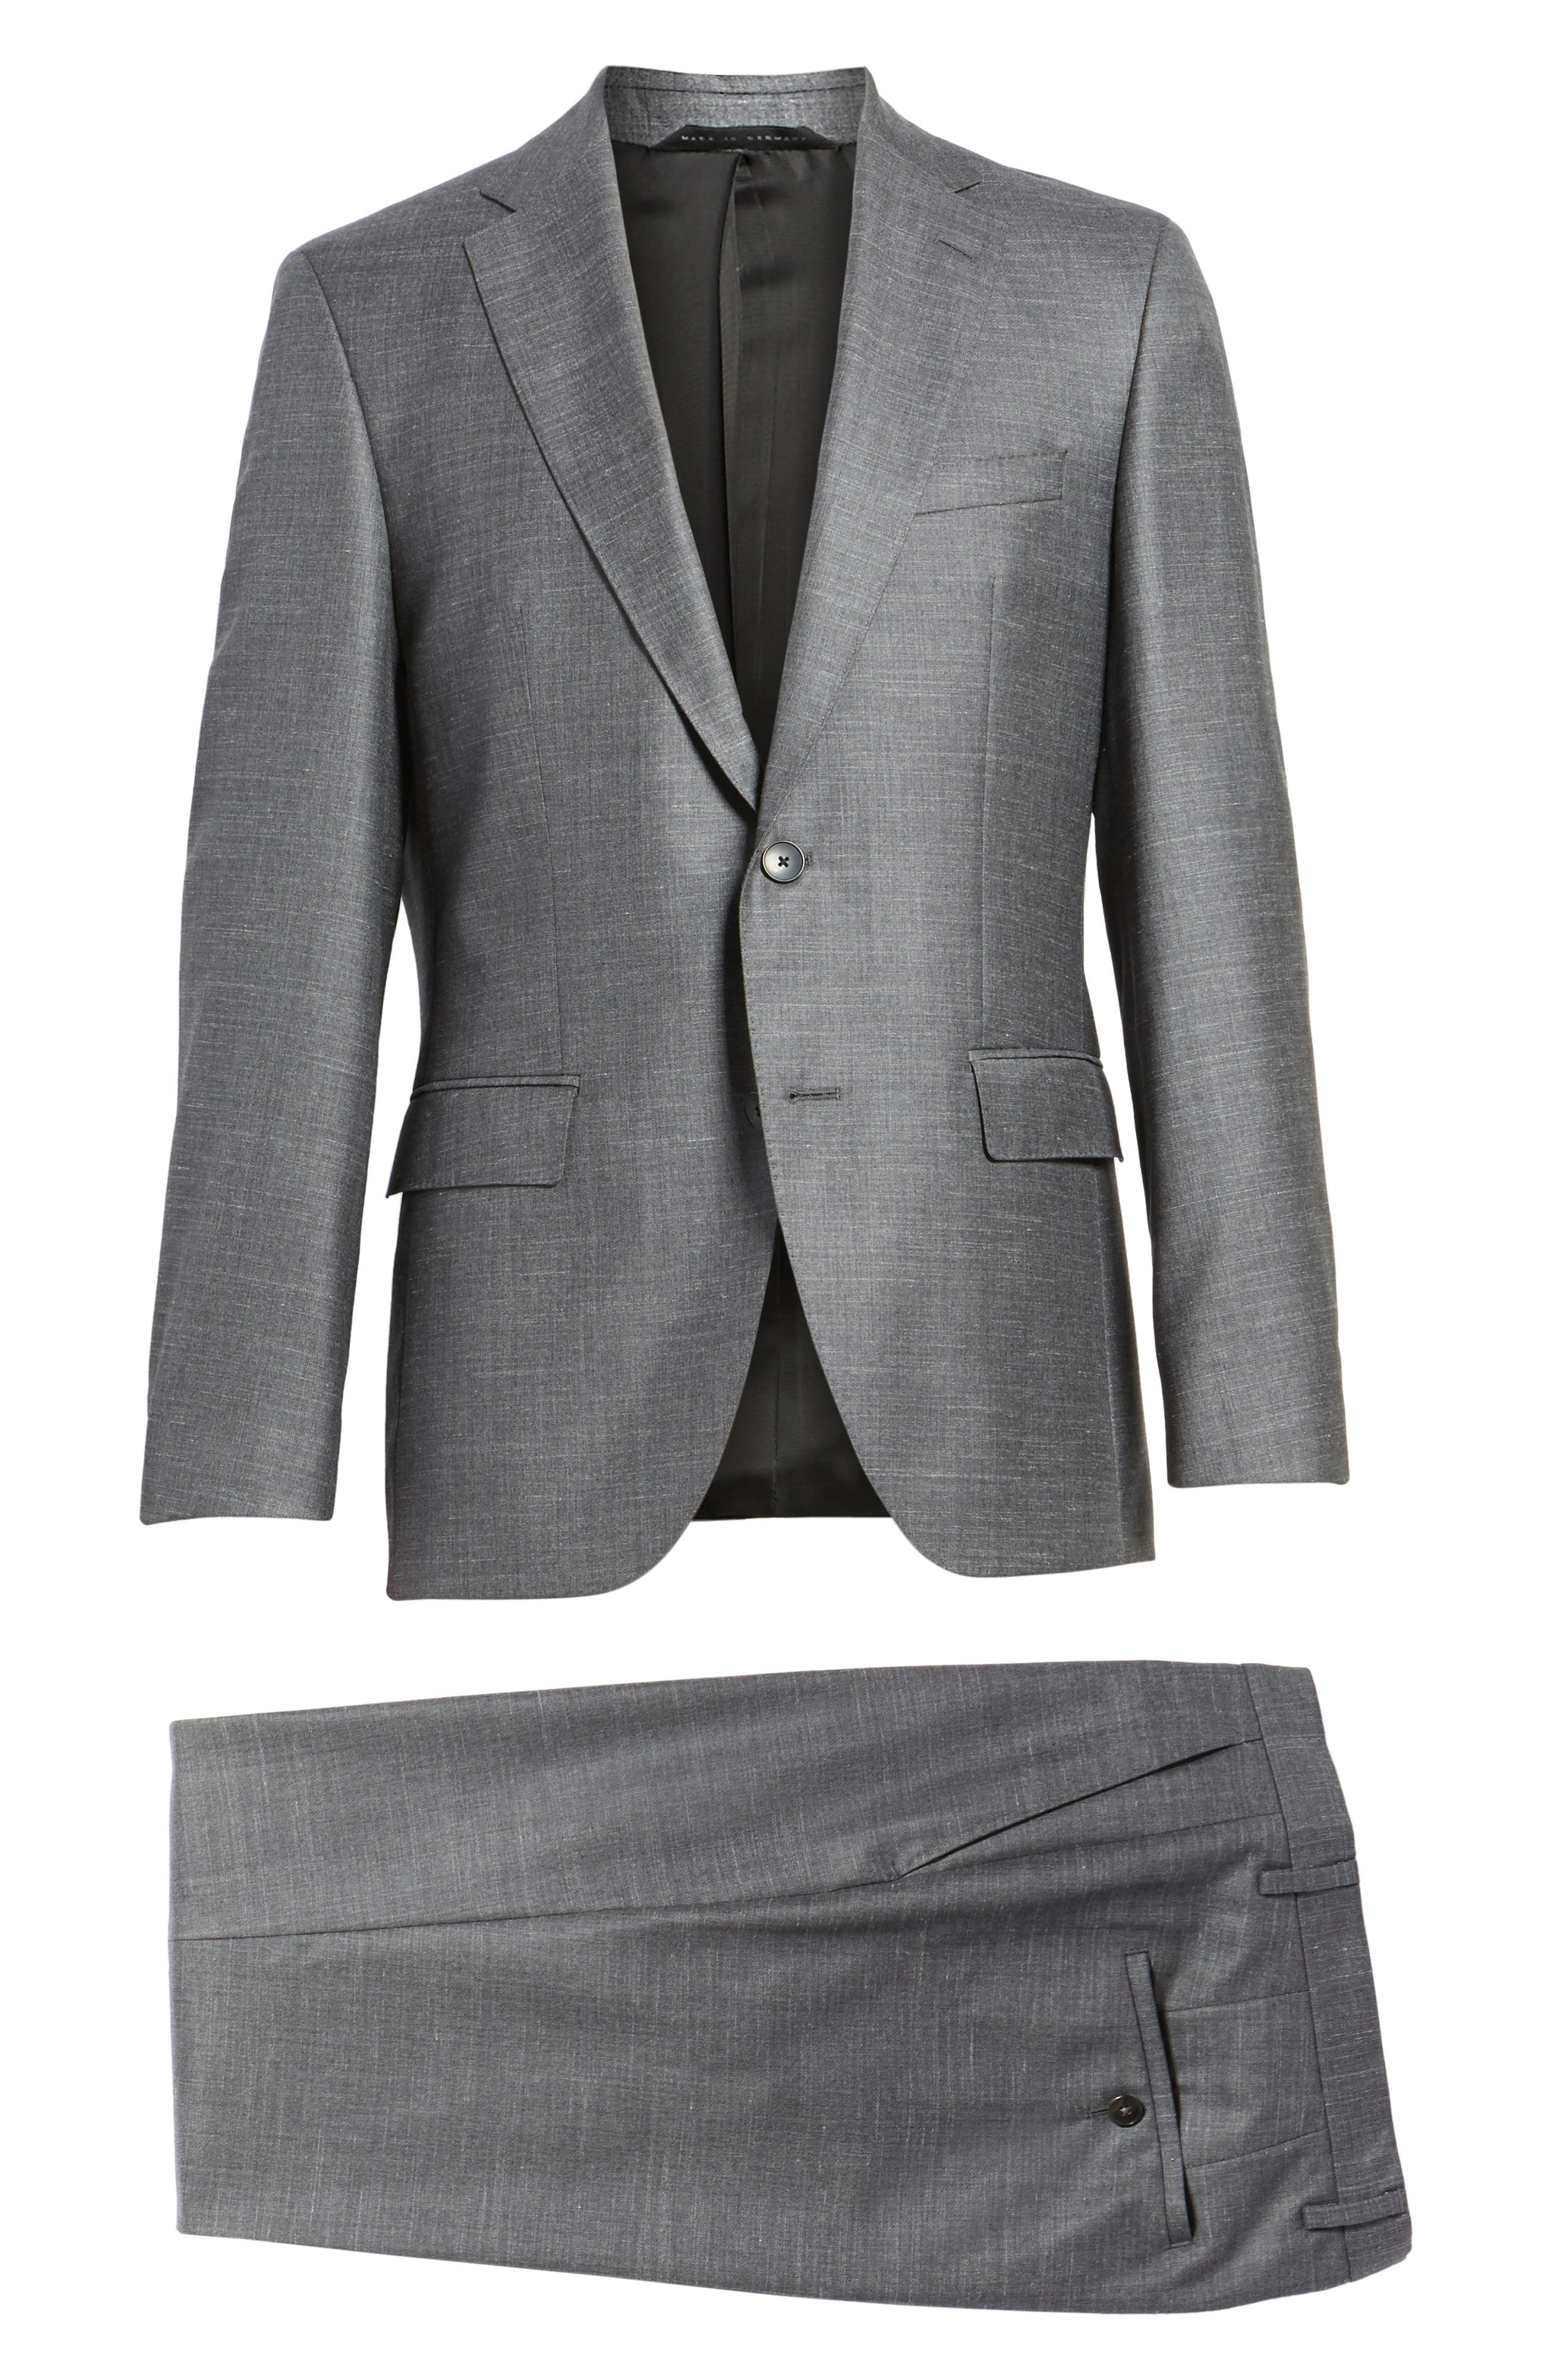 Johnstons/Lenon Classic Fit Solid Wool Blend Suit,                             Alternate thumbnail 8, color,                             061